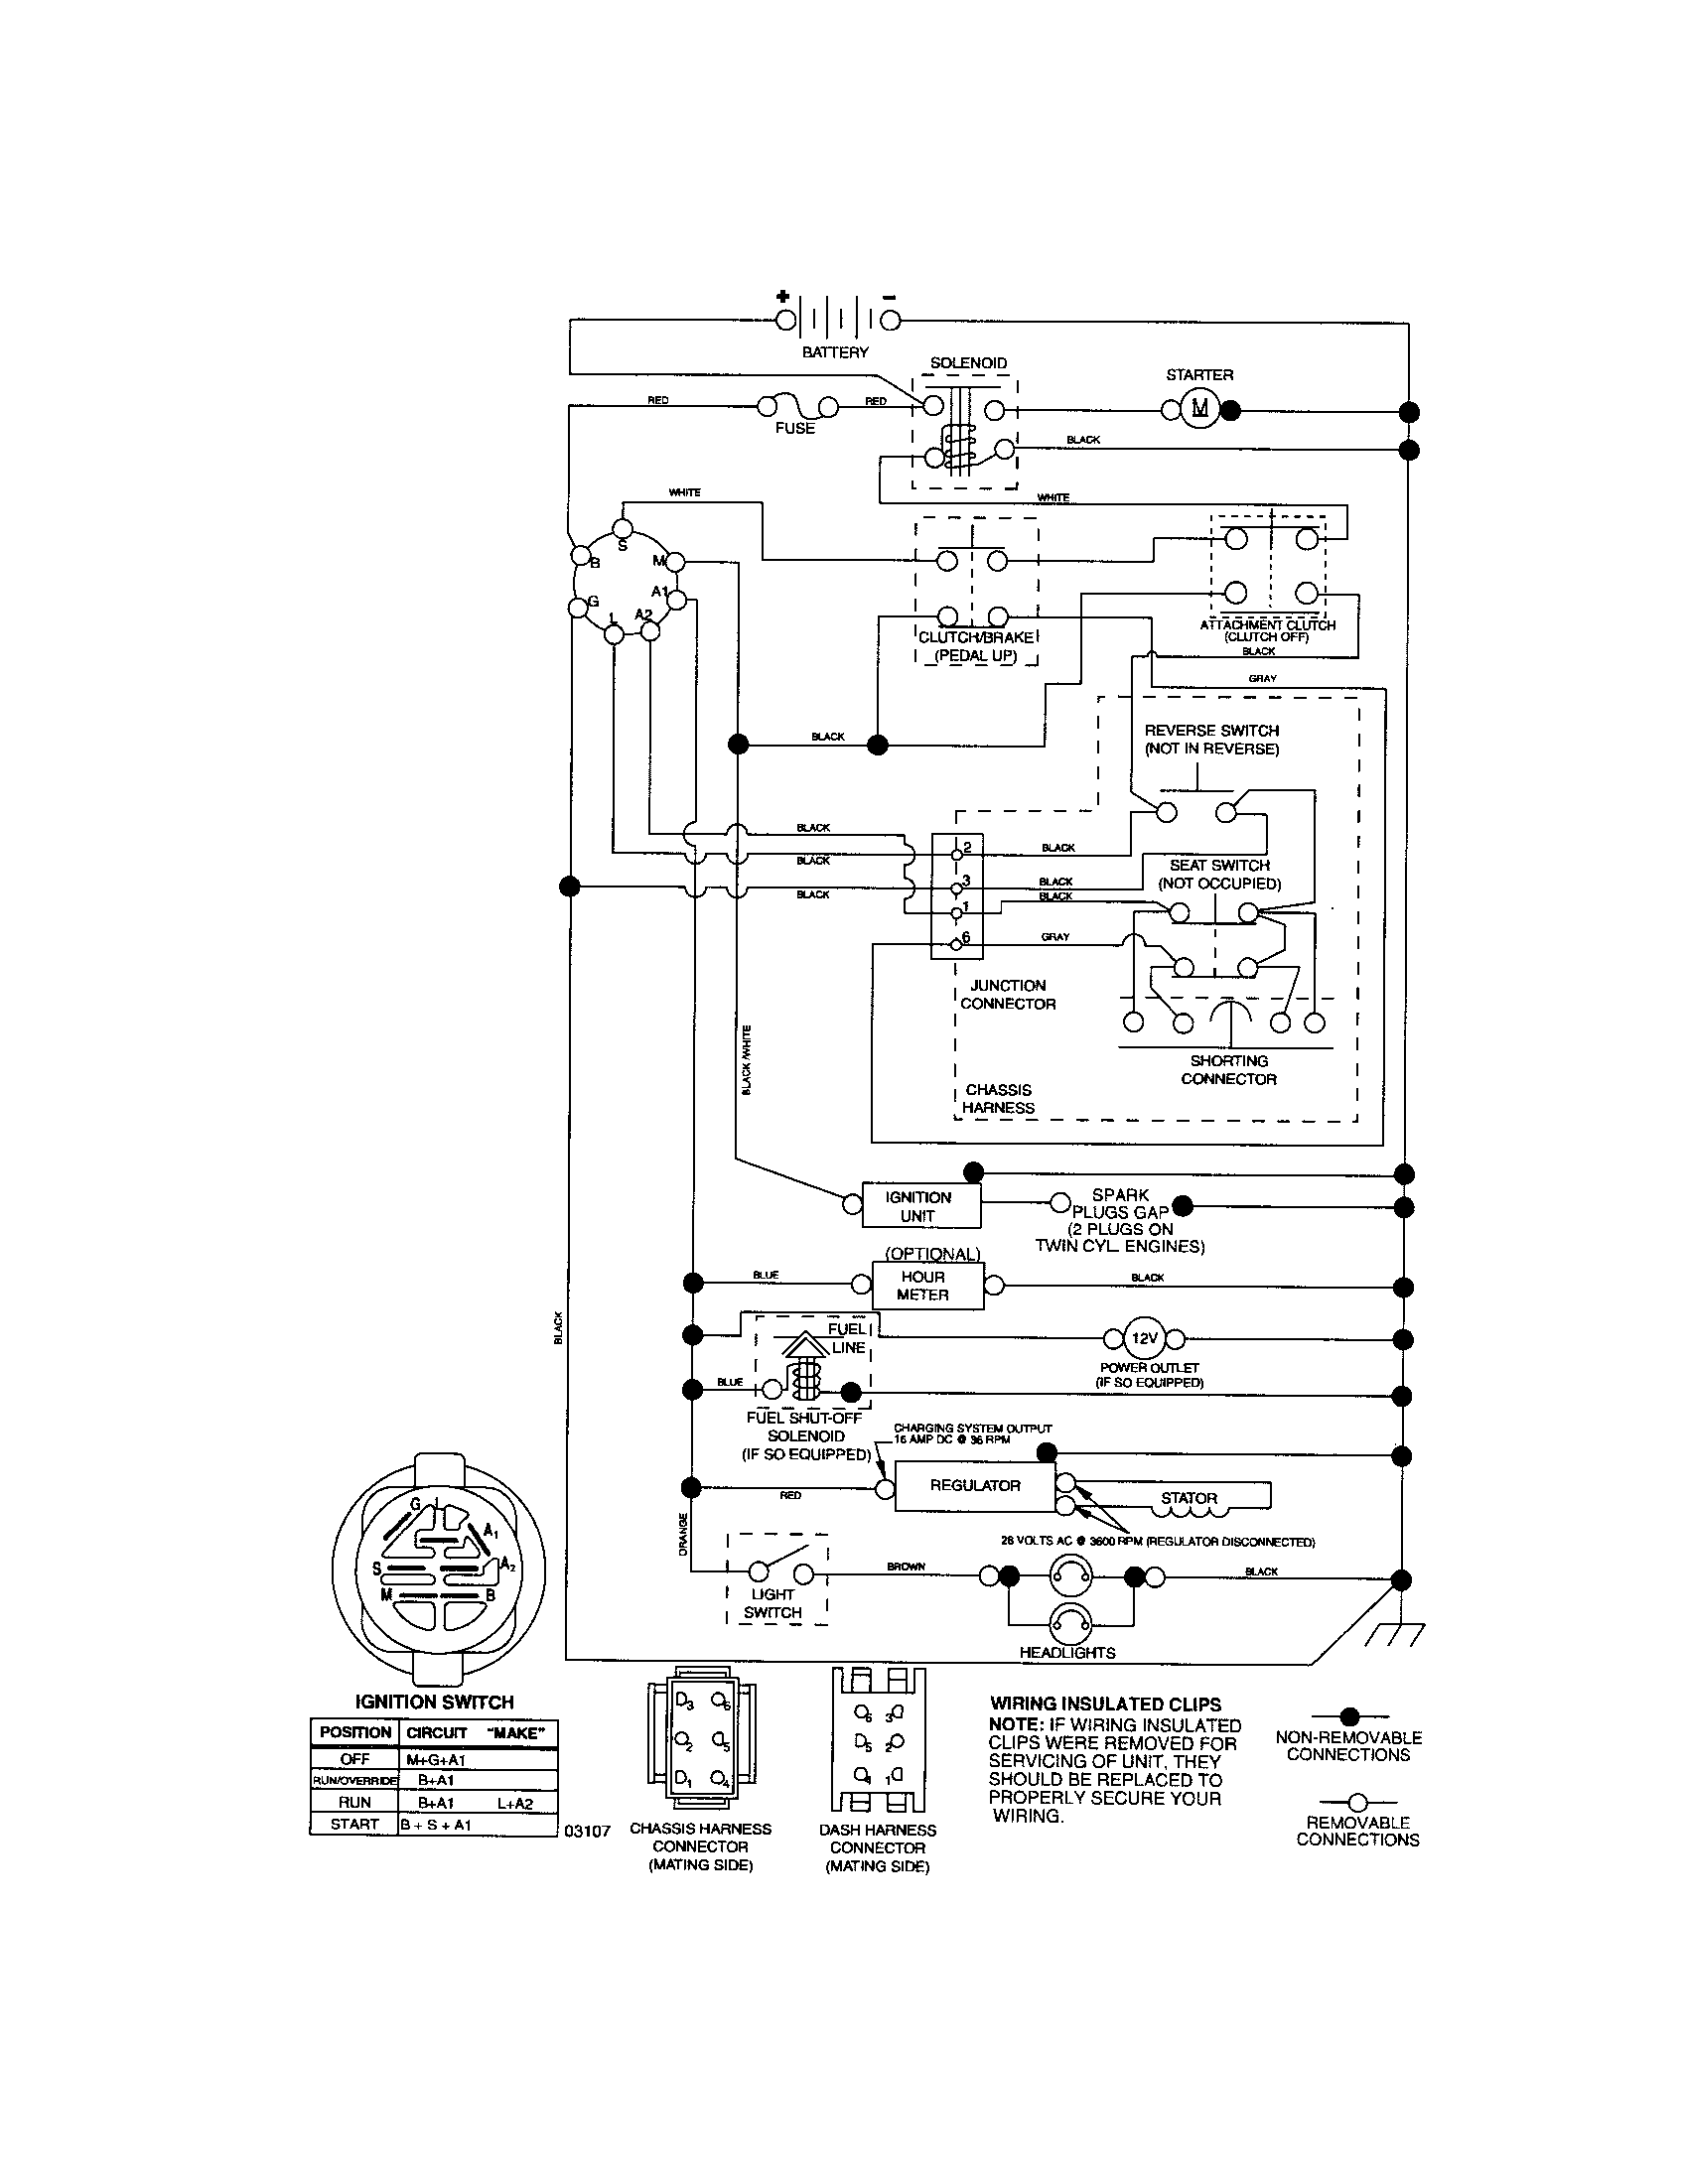 Wiring Diagram For Gs6500 Tractor Wire Center Ford 8n Firing Order Craftsman Riding Mower Electrical Rh Pinterest Com Ignition Switch